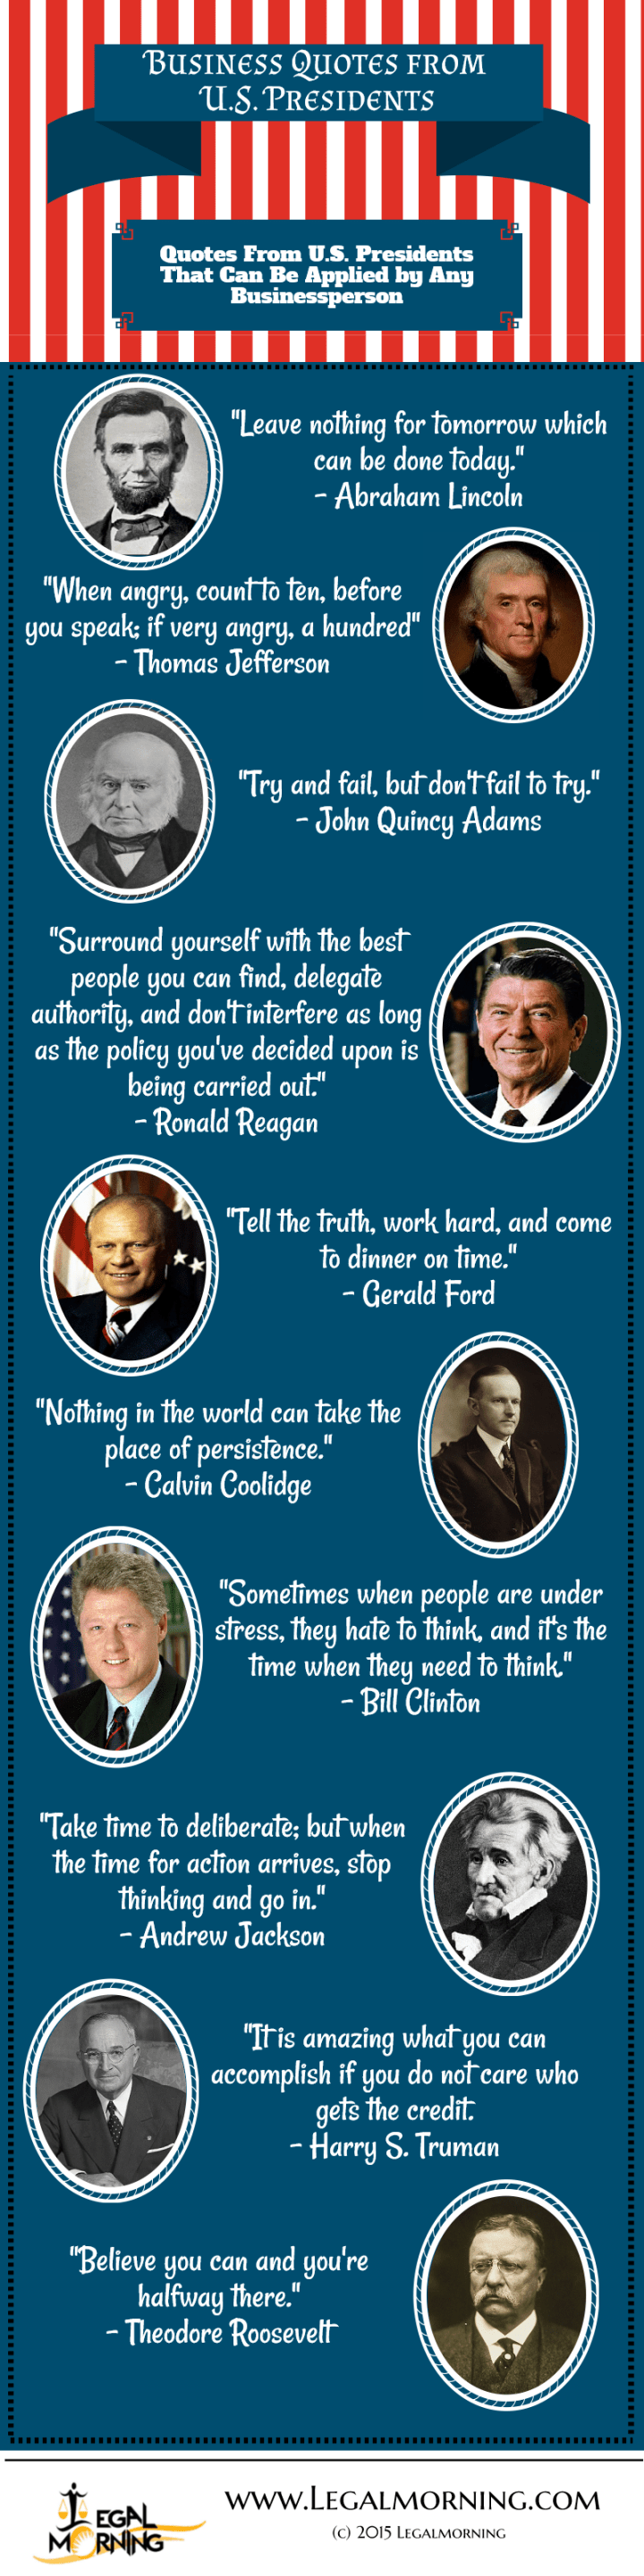 US President Quotes